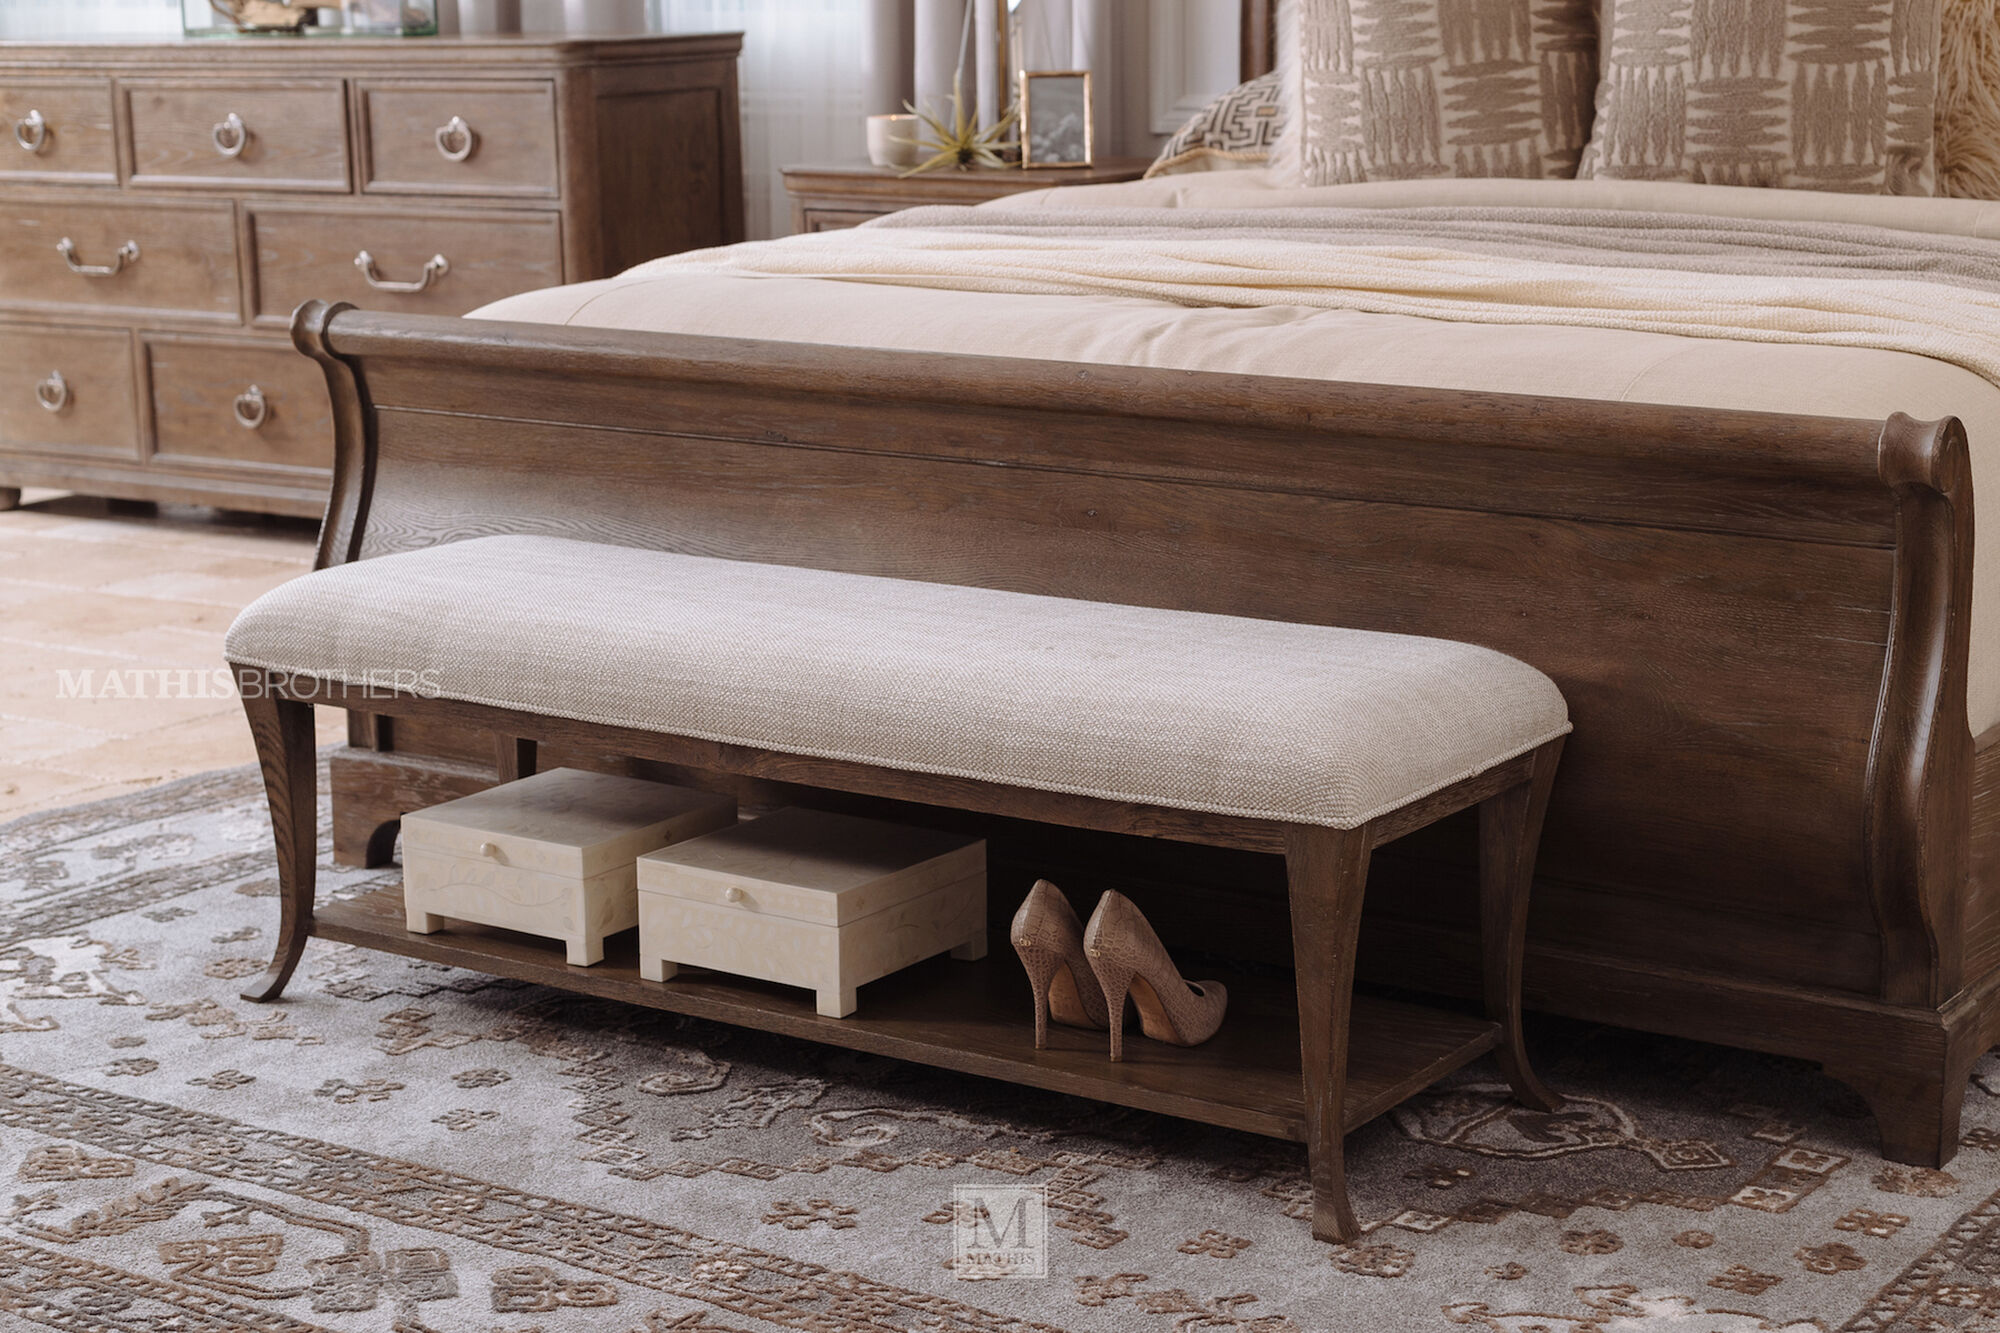 18 Quot Traditional Bedroom Bench In Brown Mathis Brothers